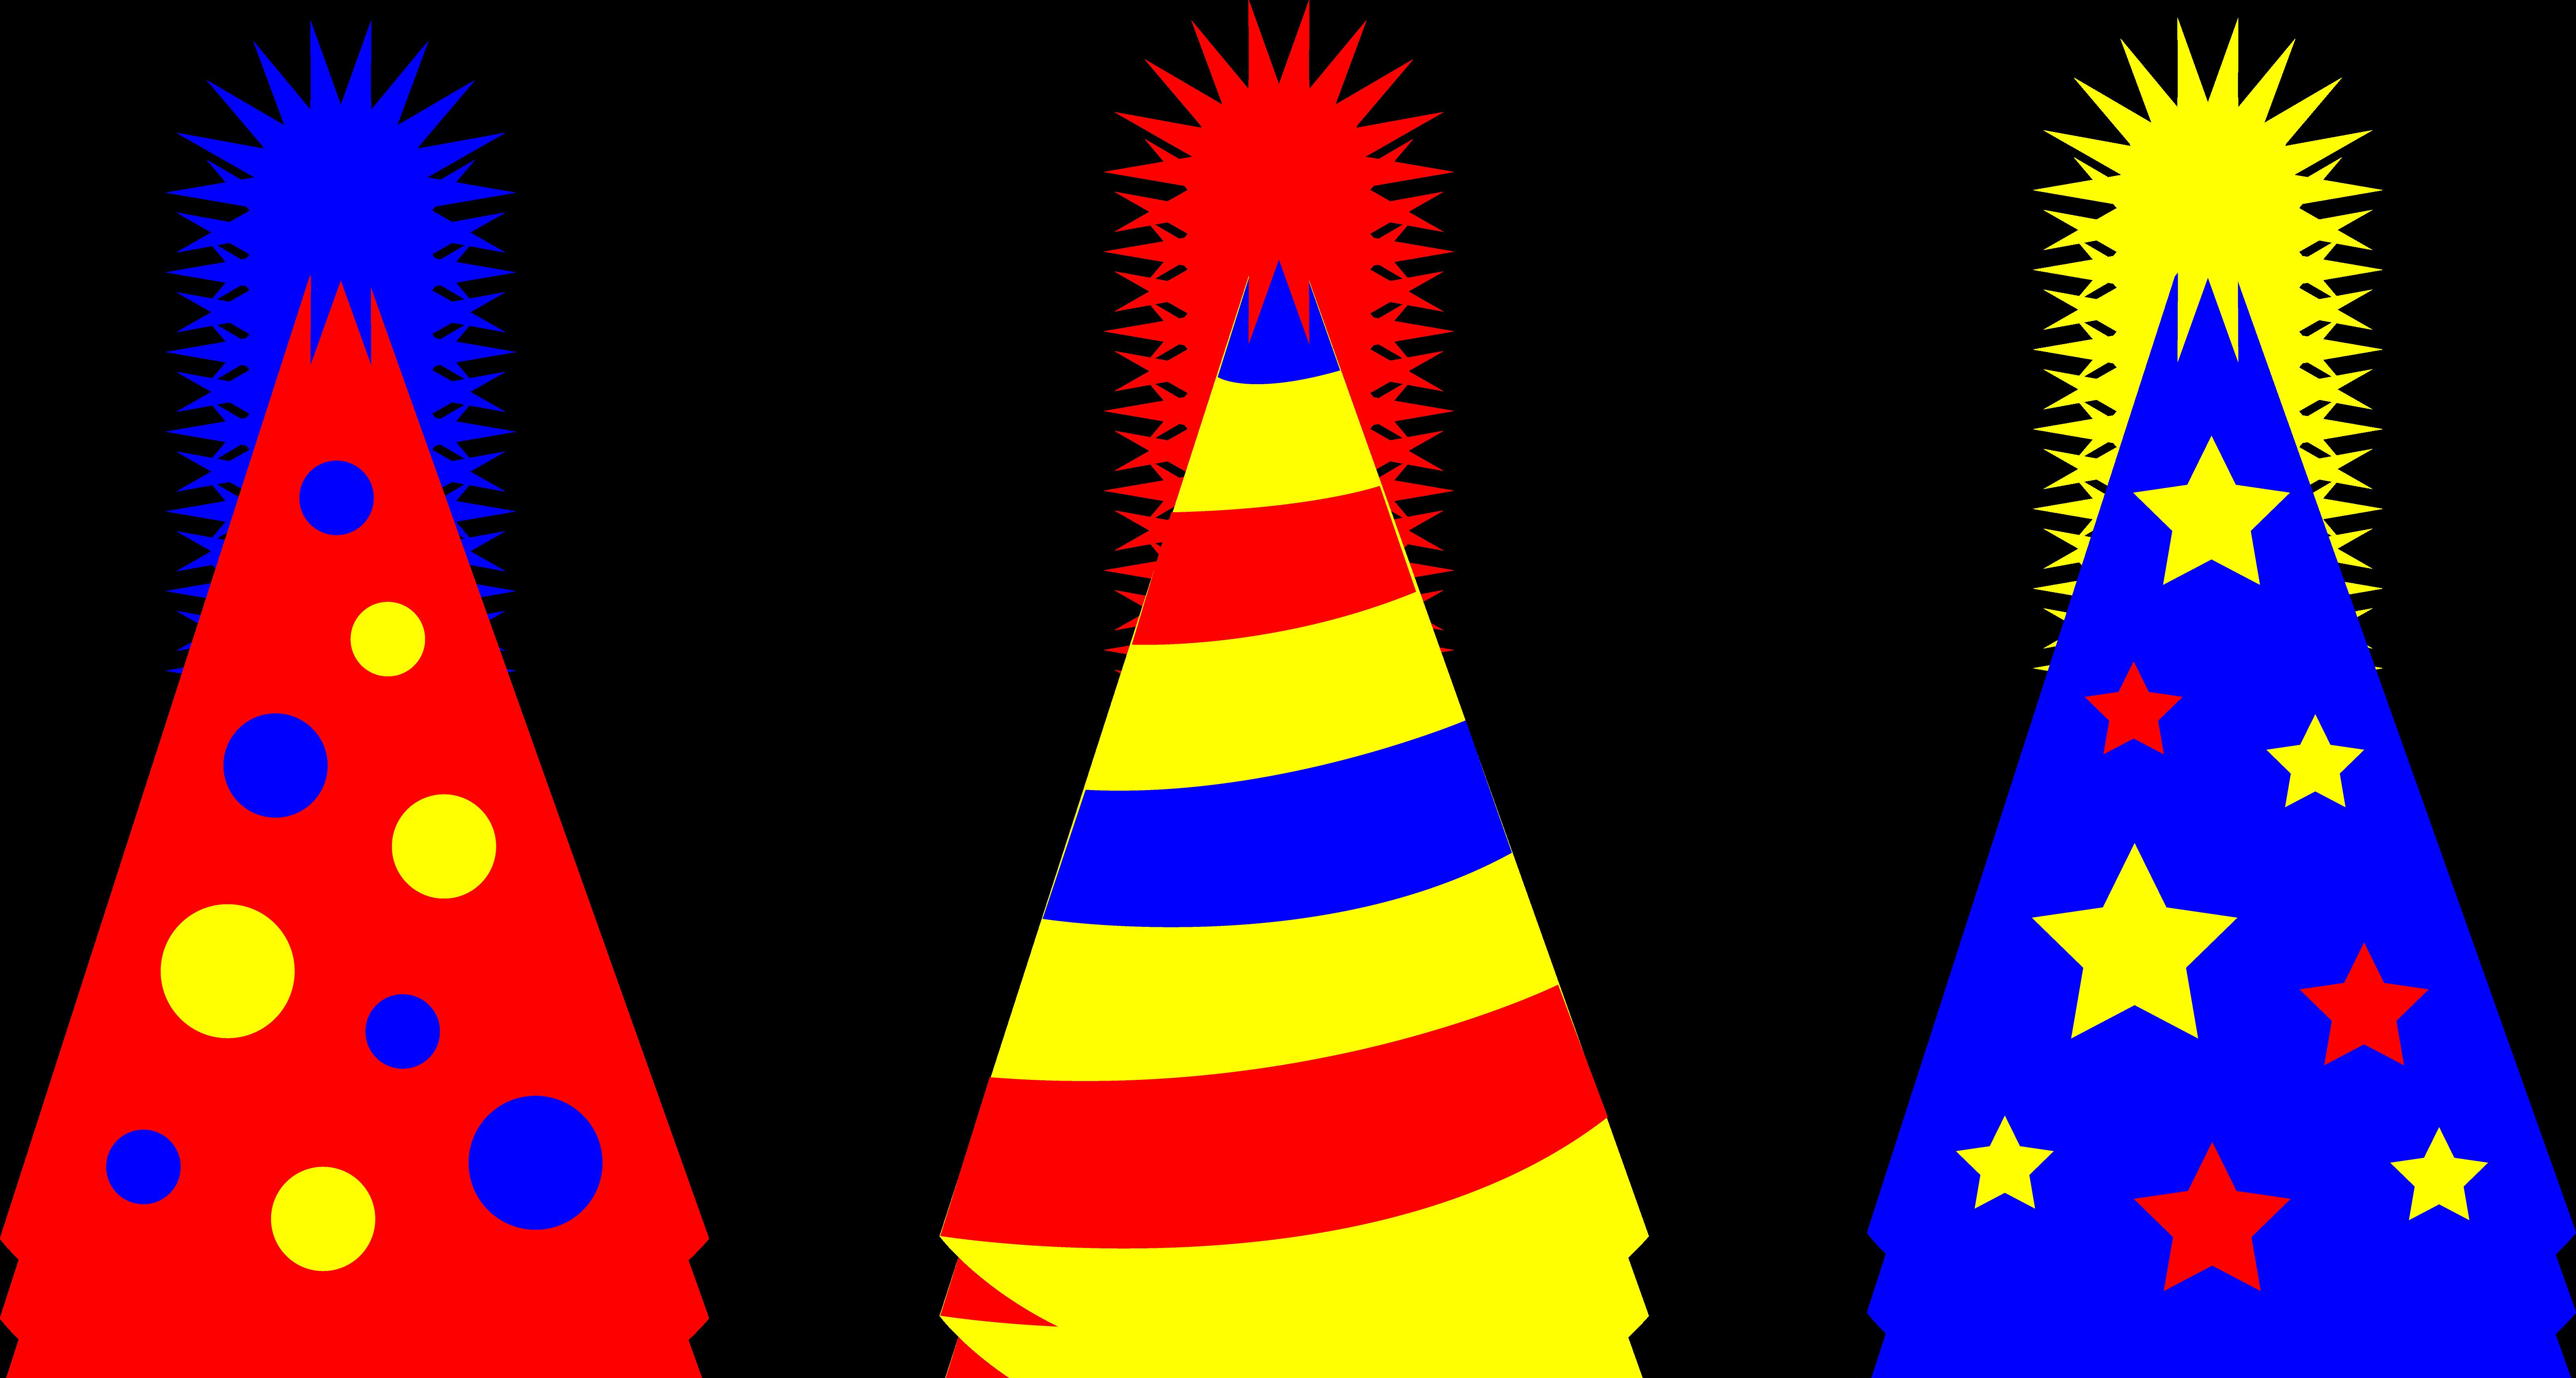 birthday party hat clipart ; birthday_party_hats_set_2